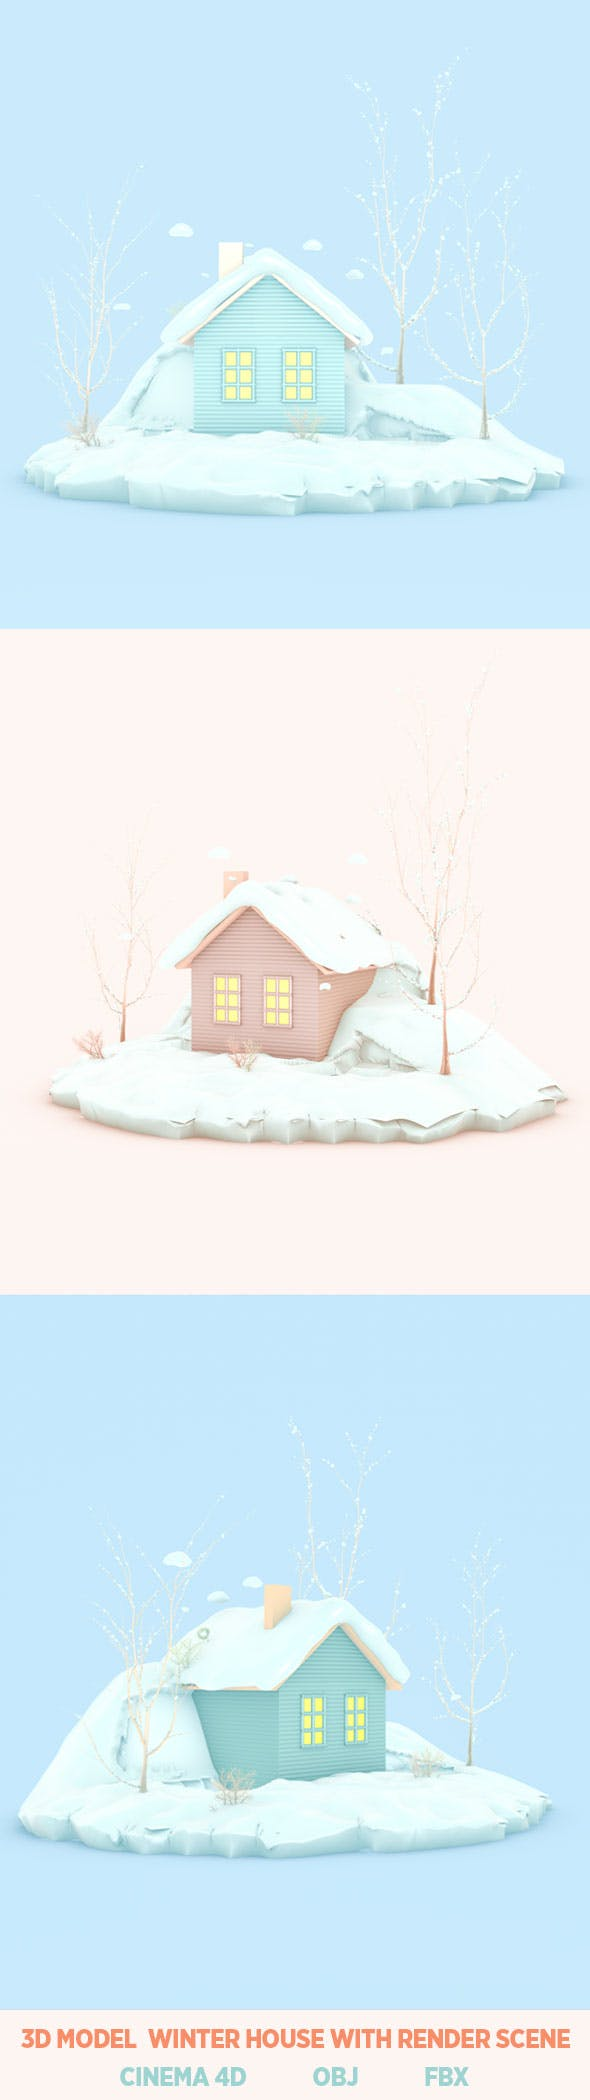 winter new year concept. snow house cartoon background 3d rendering. - 3DOcean Item for Sale